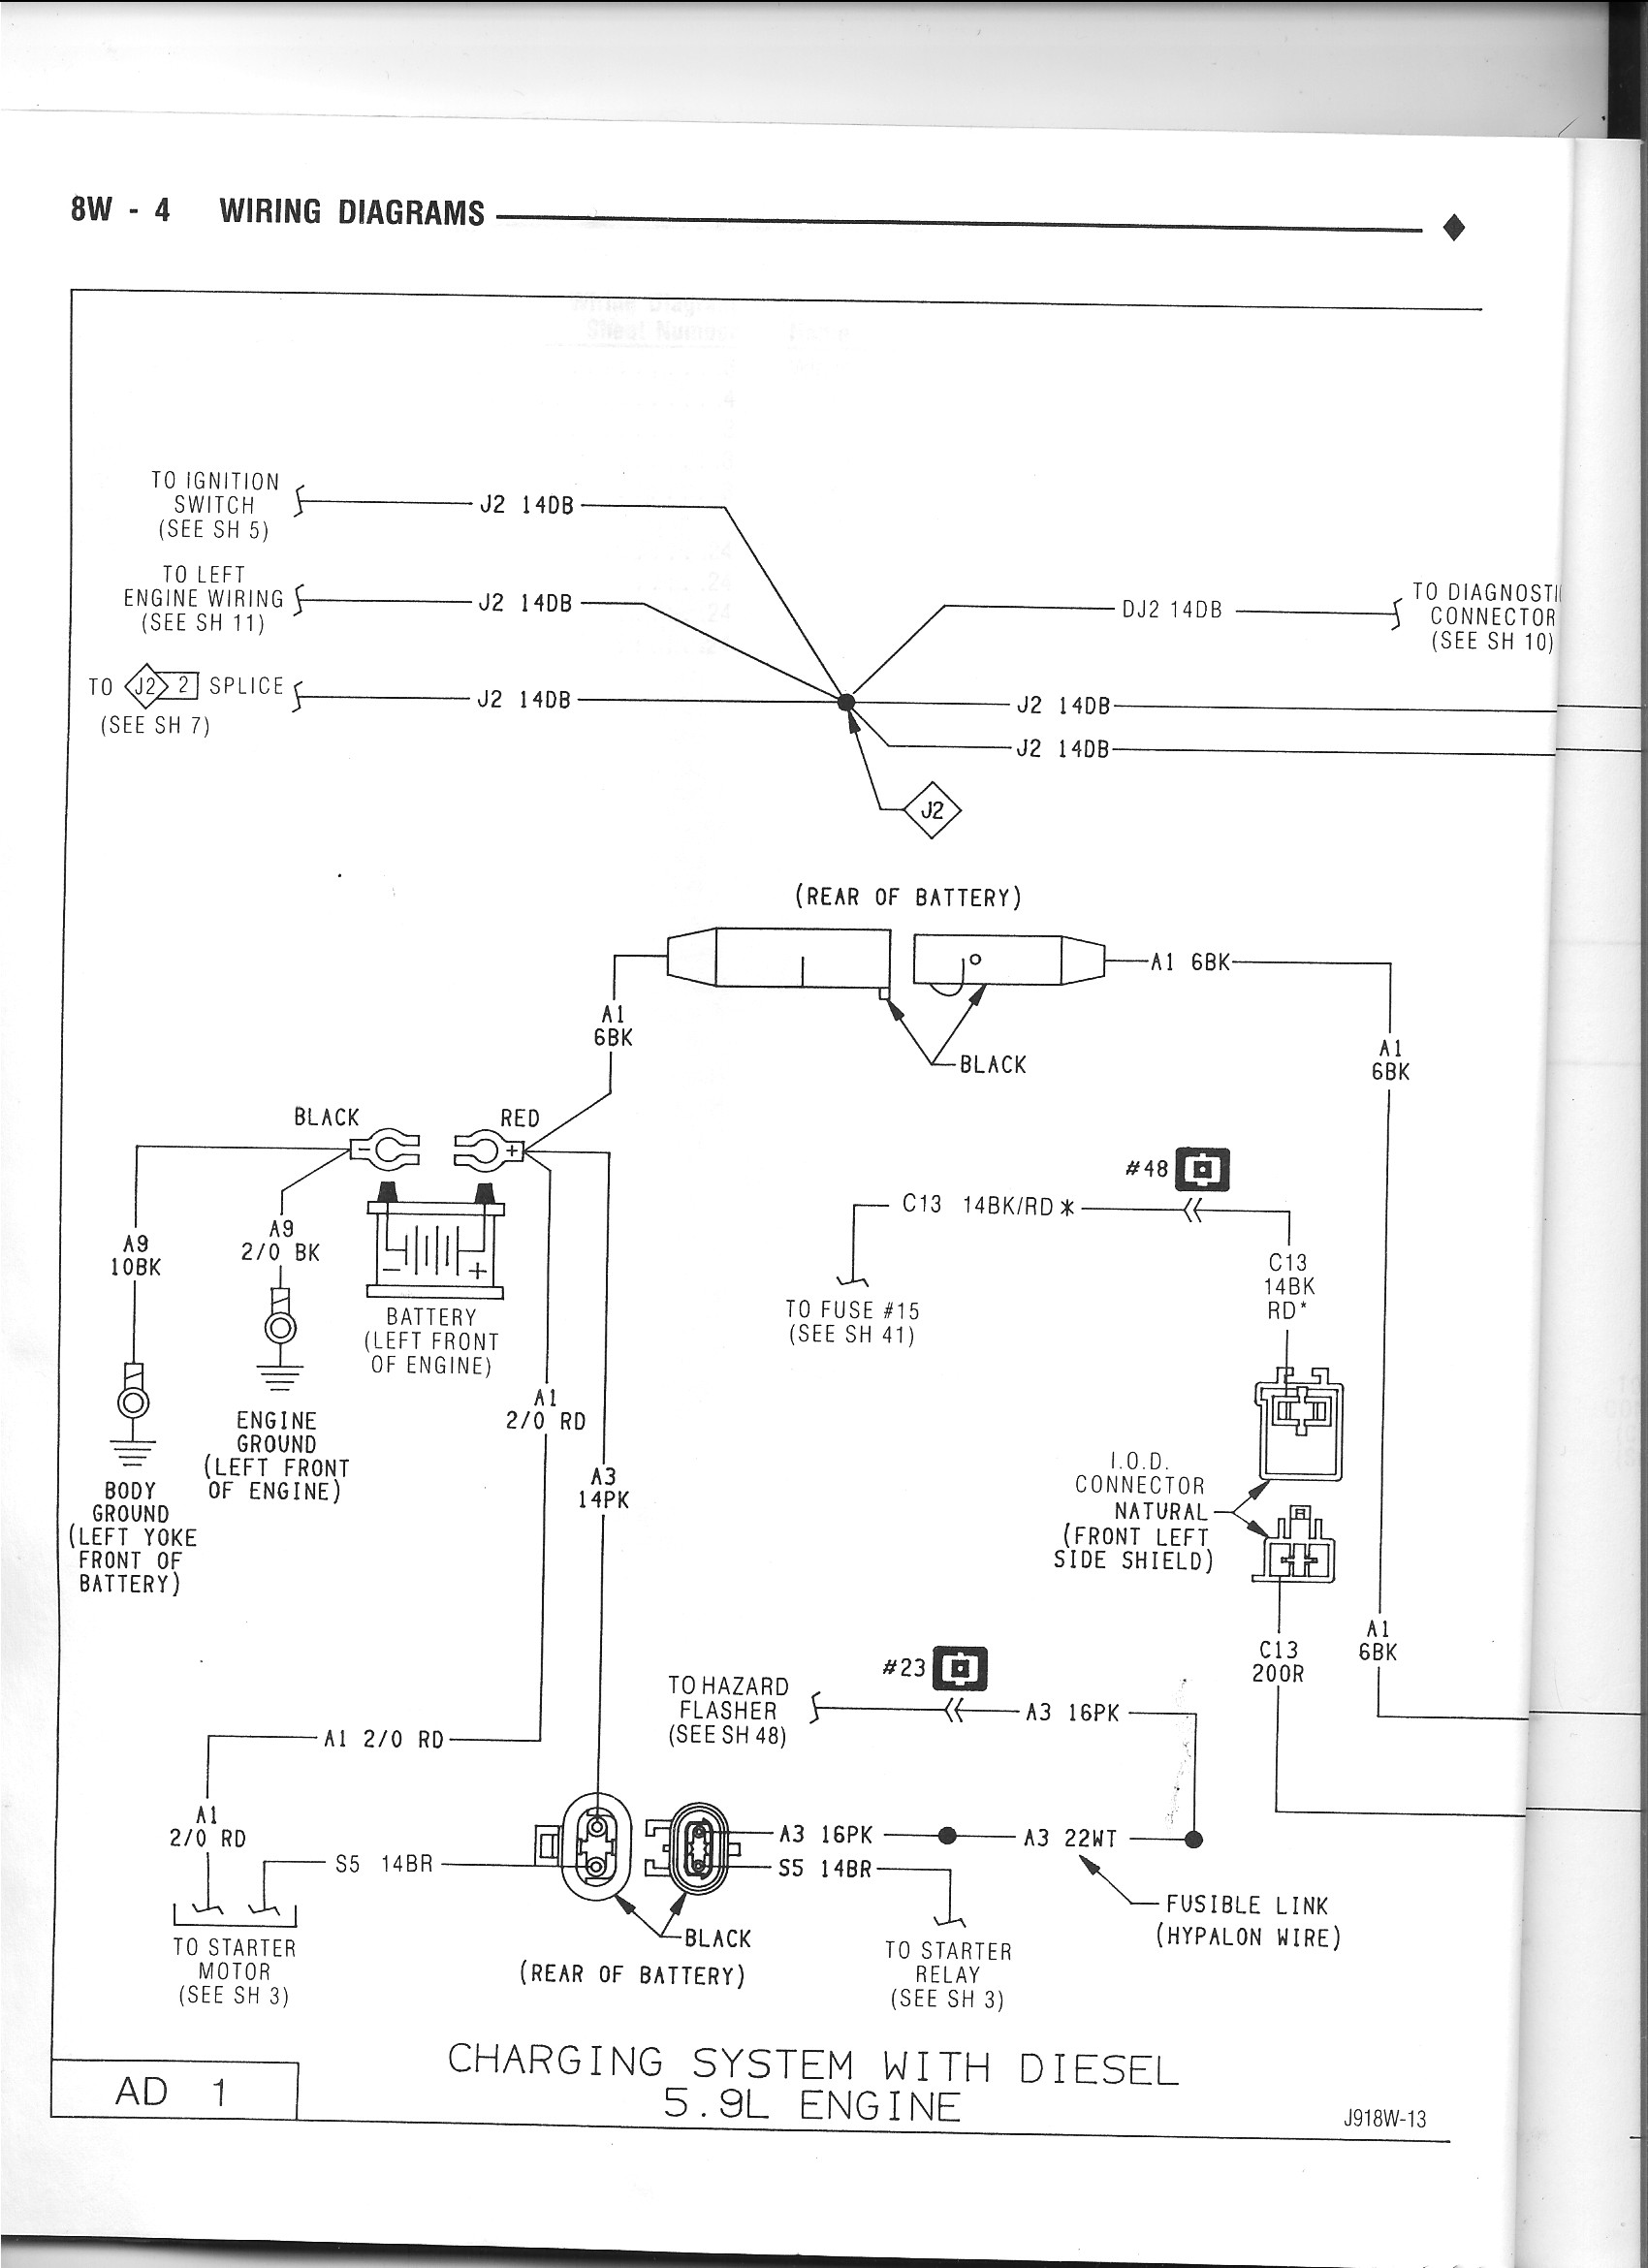 alternator 101 dodge diesel diesel truck resource forums 1965 voltage regulator wiring diagram 1965 voltage regulator wiring diagram 1965 voltage regulator wiring diagram 1965 voltage regulator wiring diagram